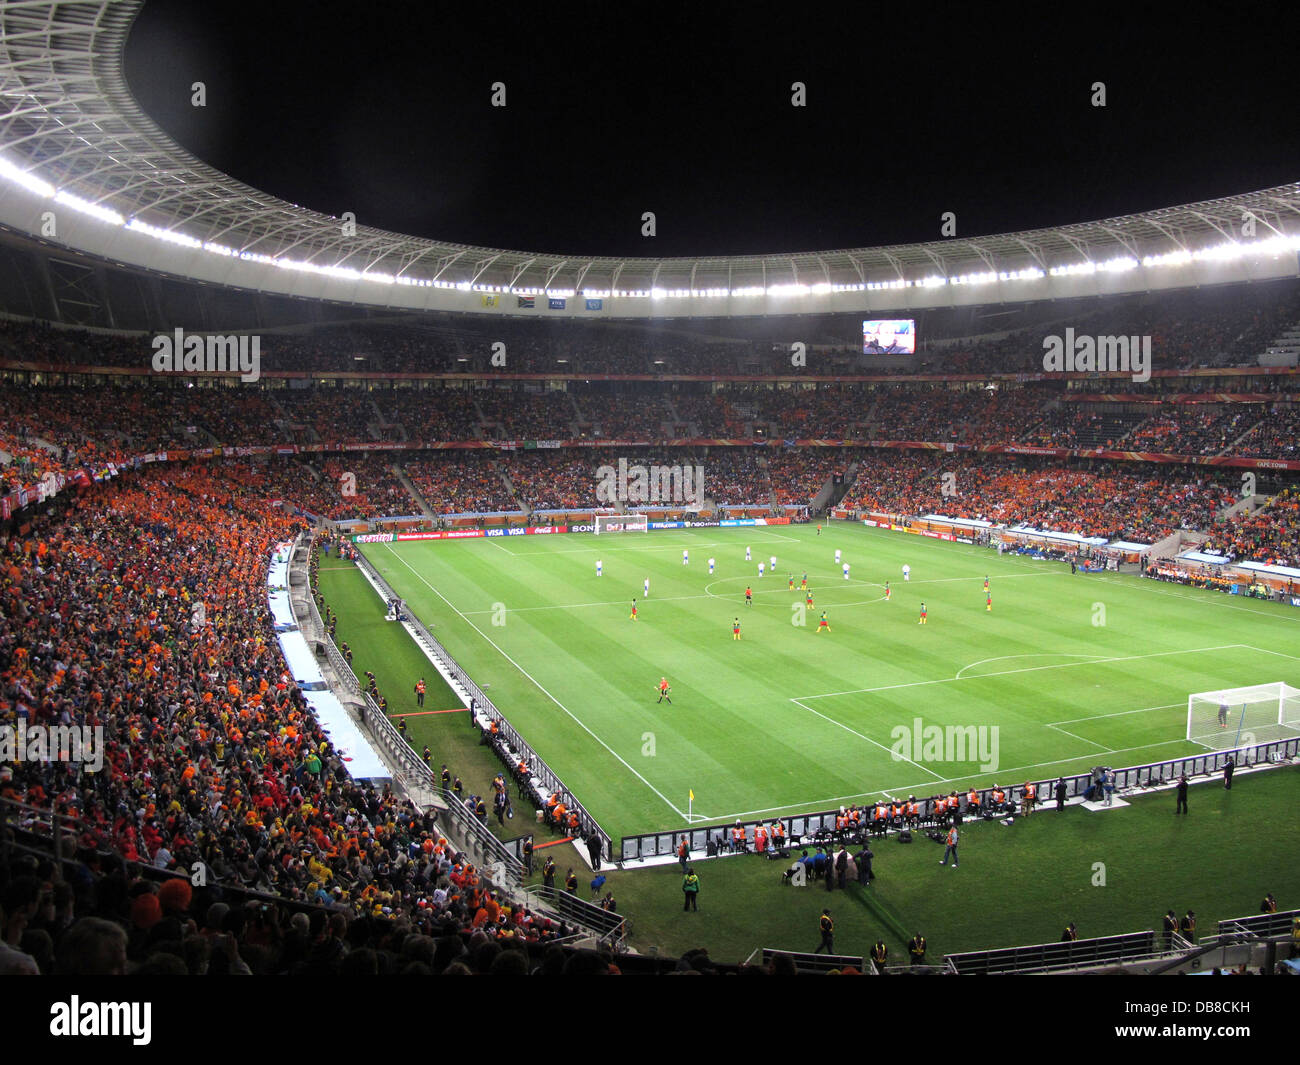 football match at Cape Town stadium during the 2010 FIFA World Cup Soccer in South Africa - Stock Image